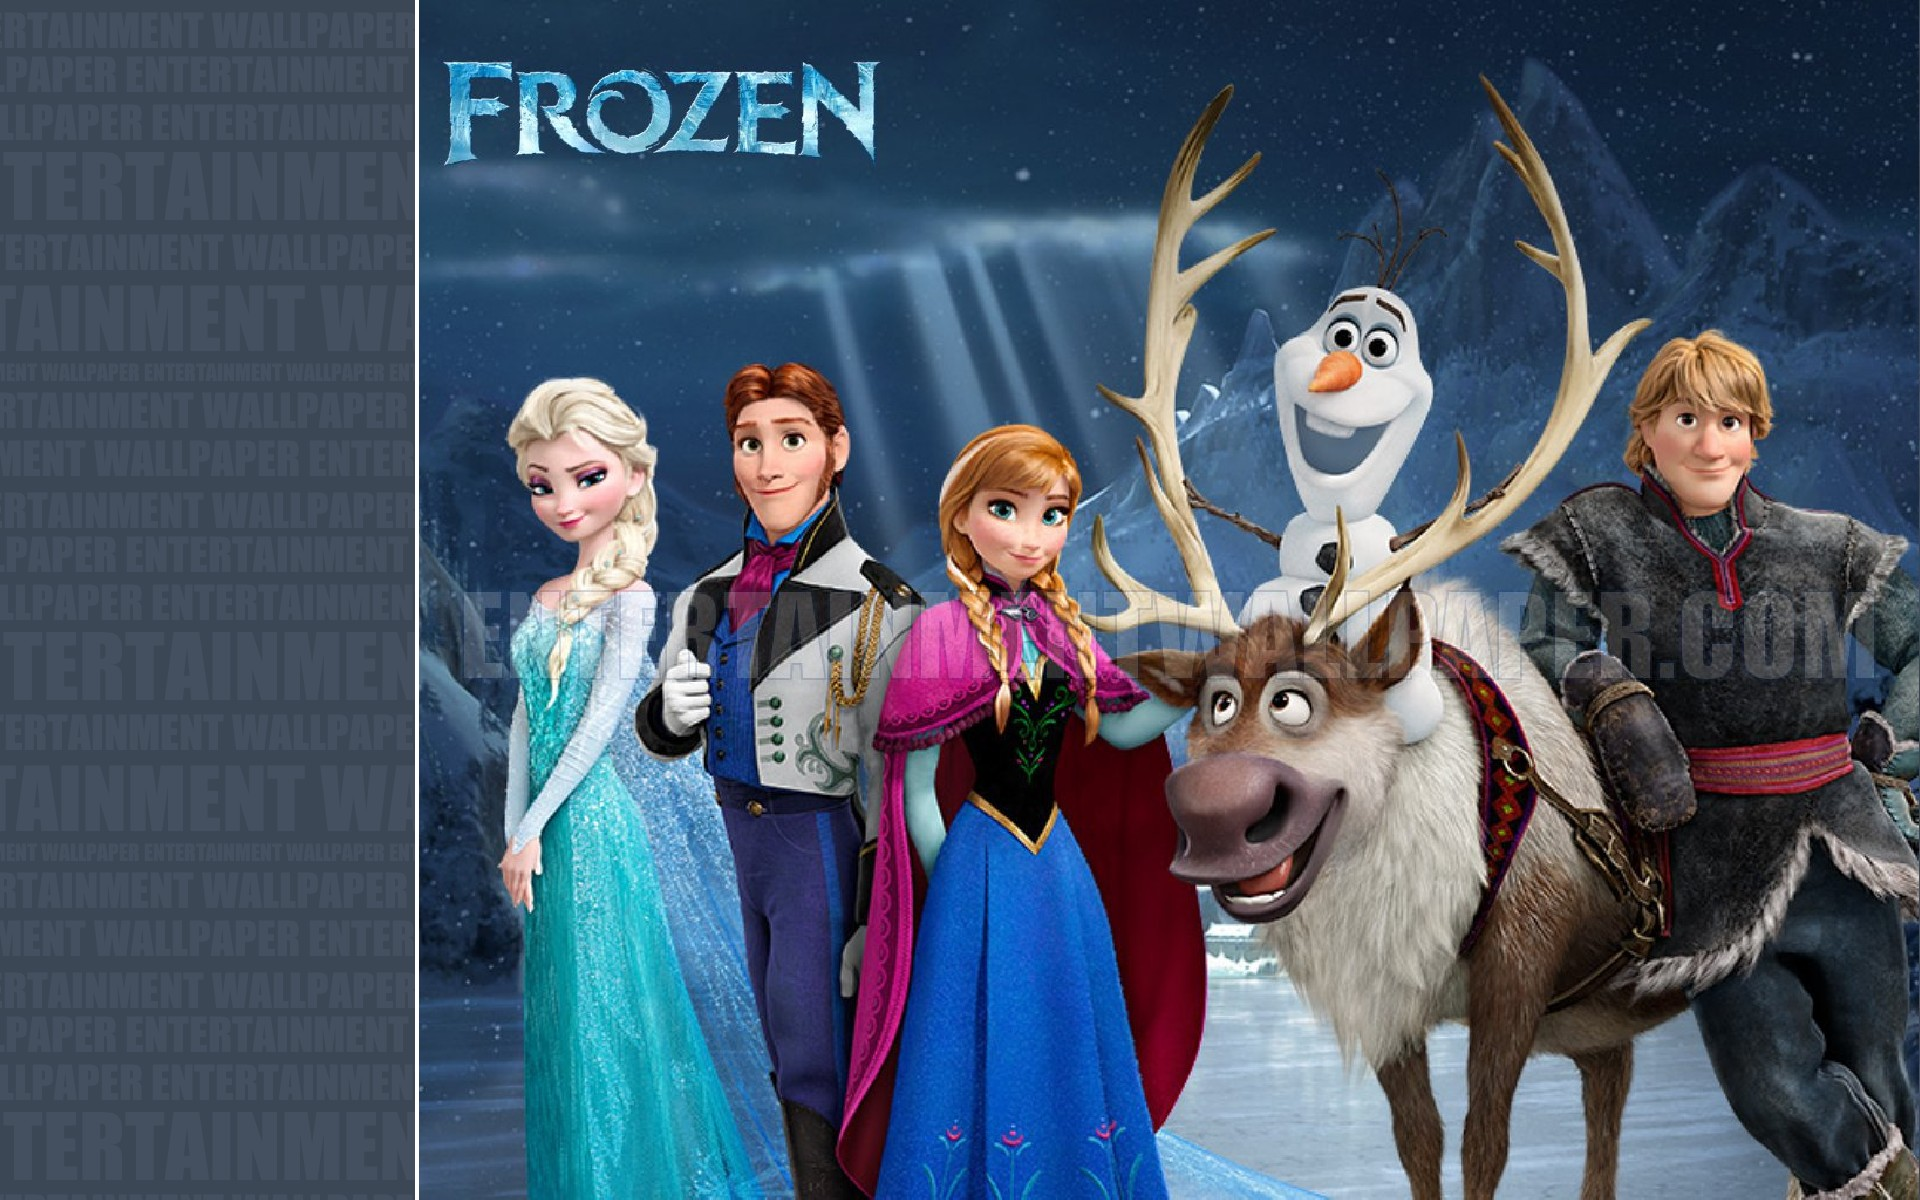 Princess Anna Images Frozen Wallpaper Hd Wallpaper And Background